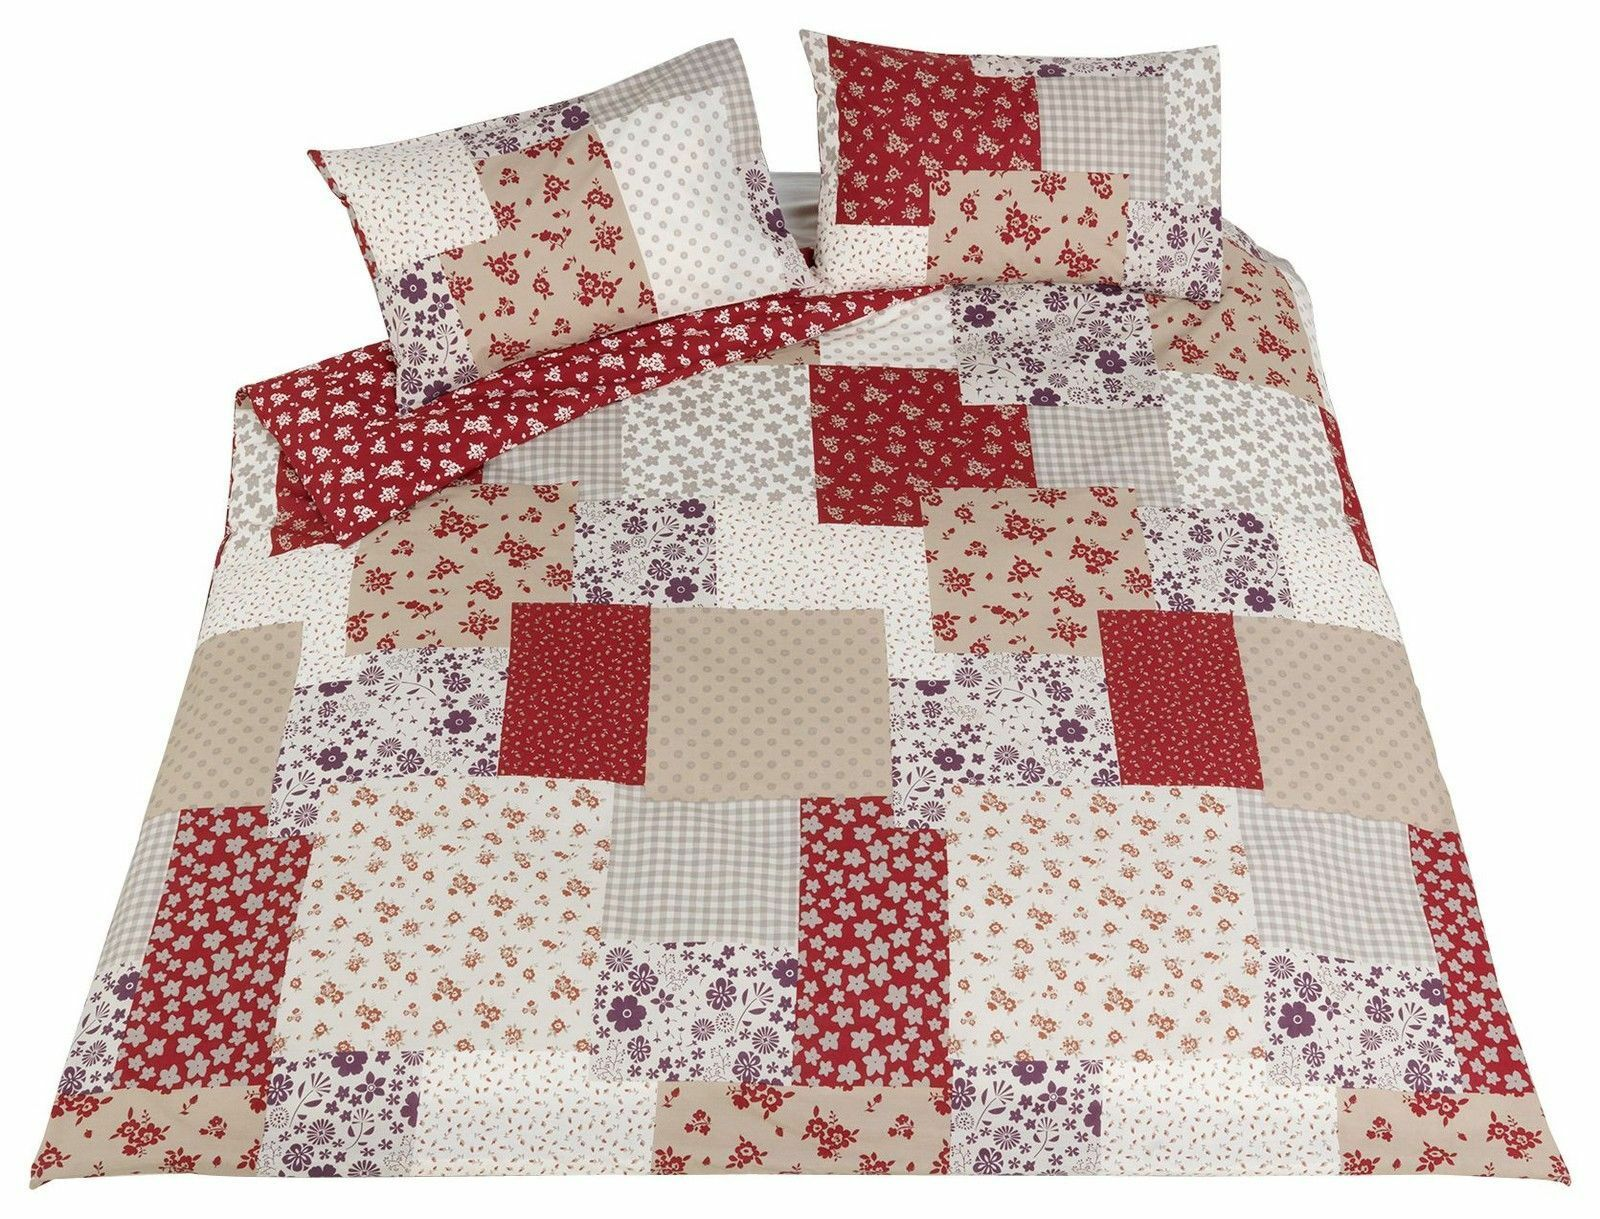 Patchwork Bedding Sets And Duvet Covers For Sale Ebay